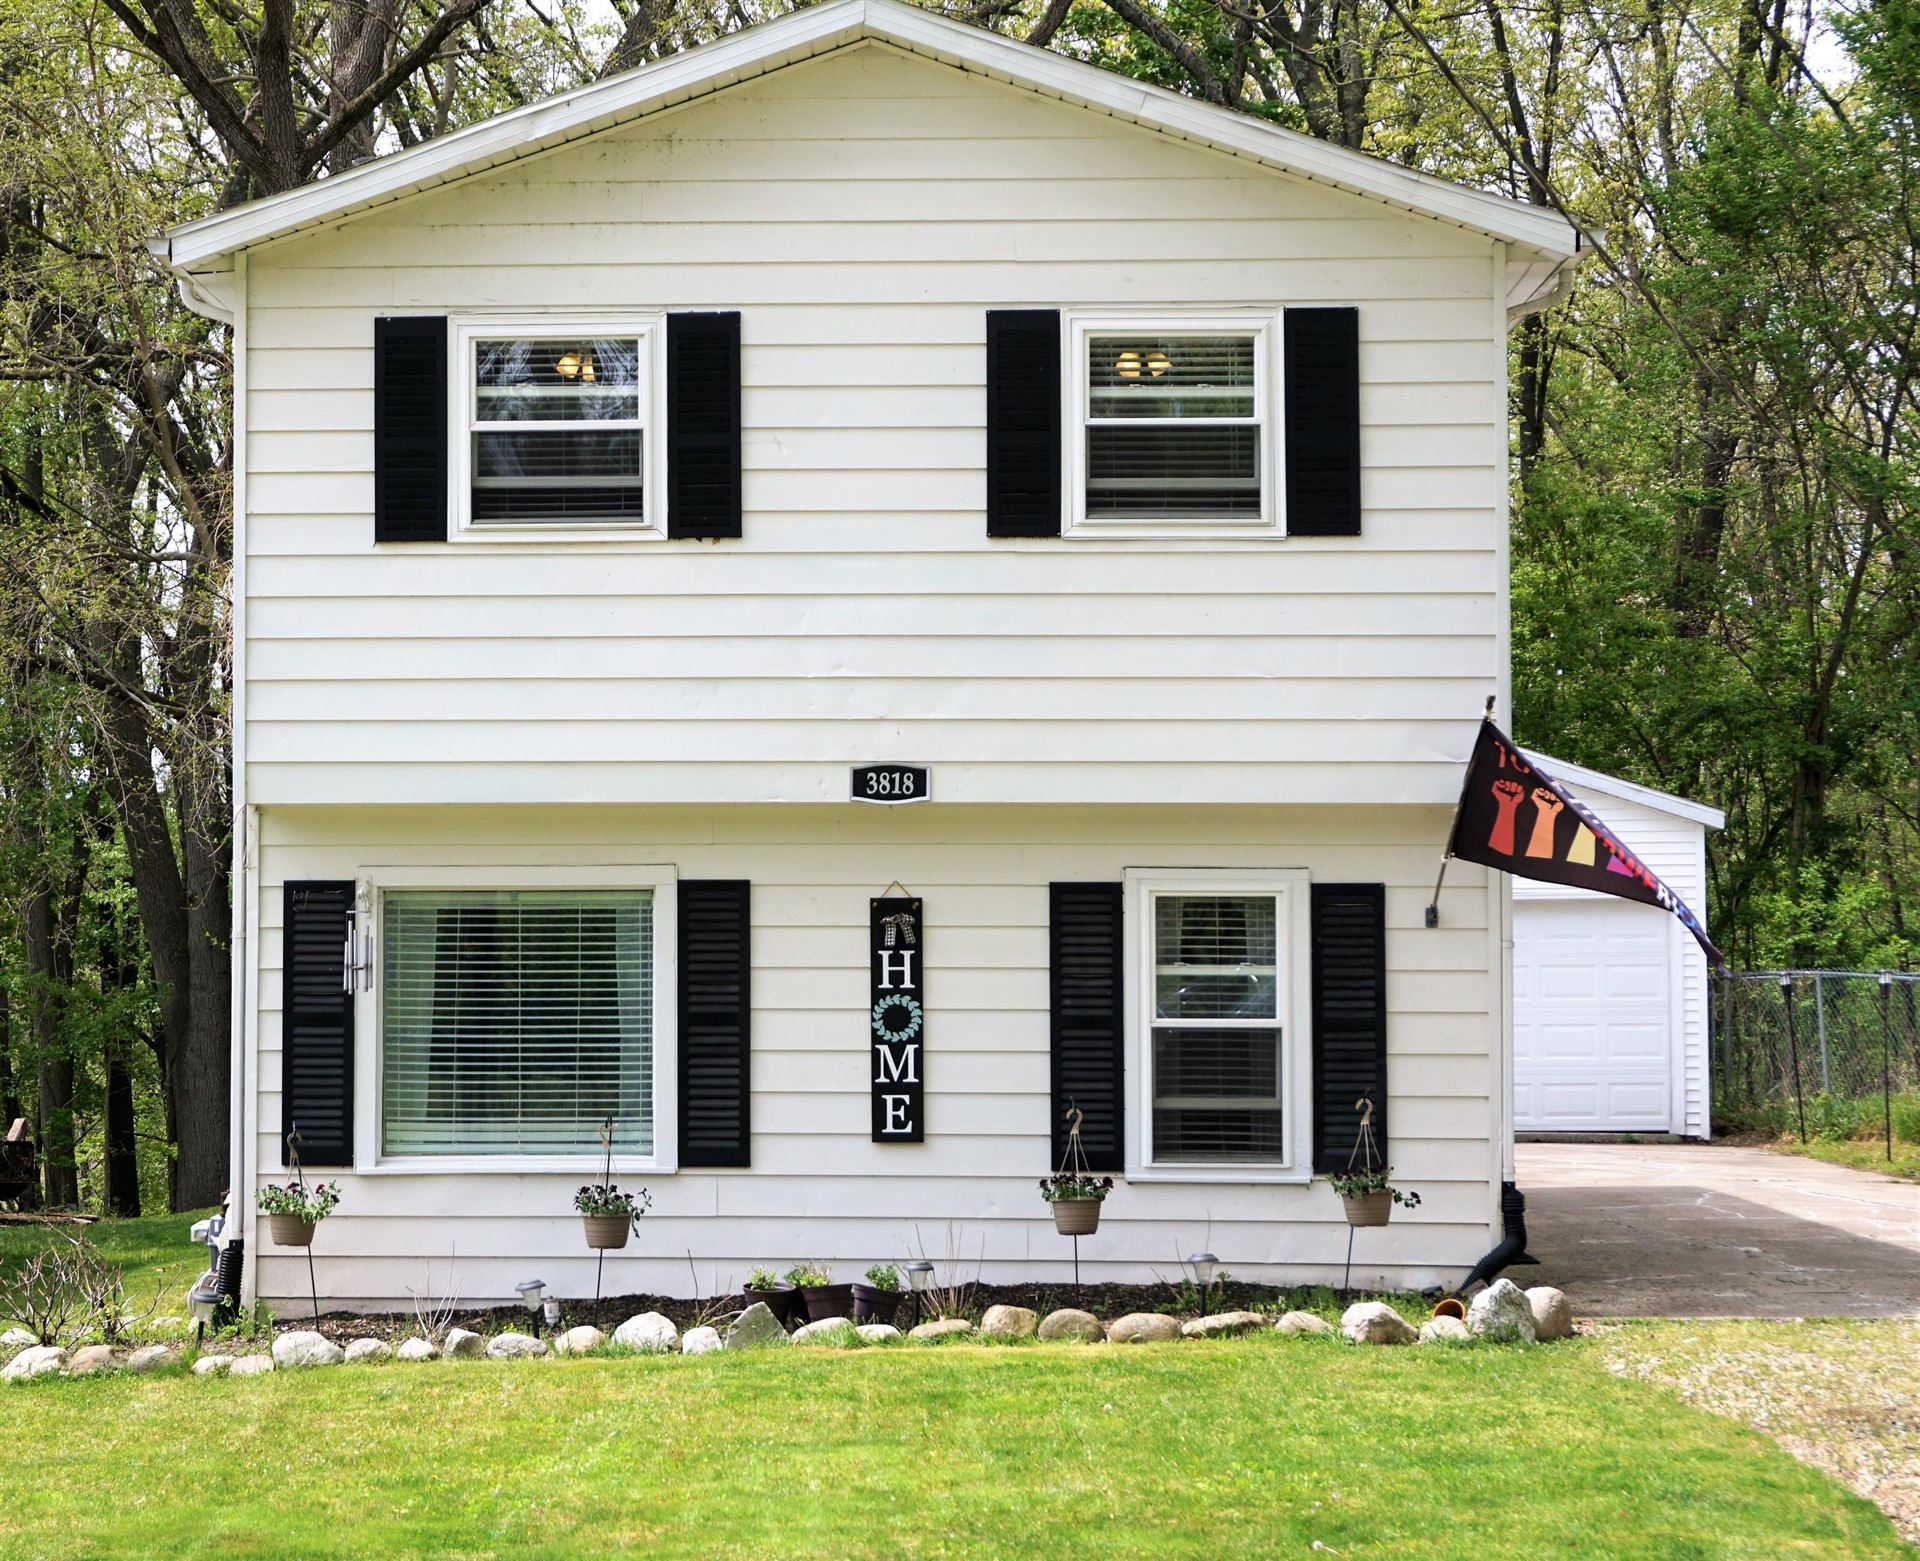 3818 Madison Street, Kalamazoo, MI 49008 - MLS#: 21017431